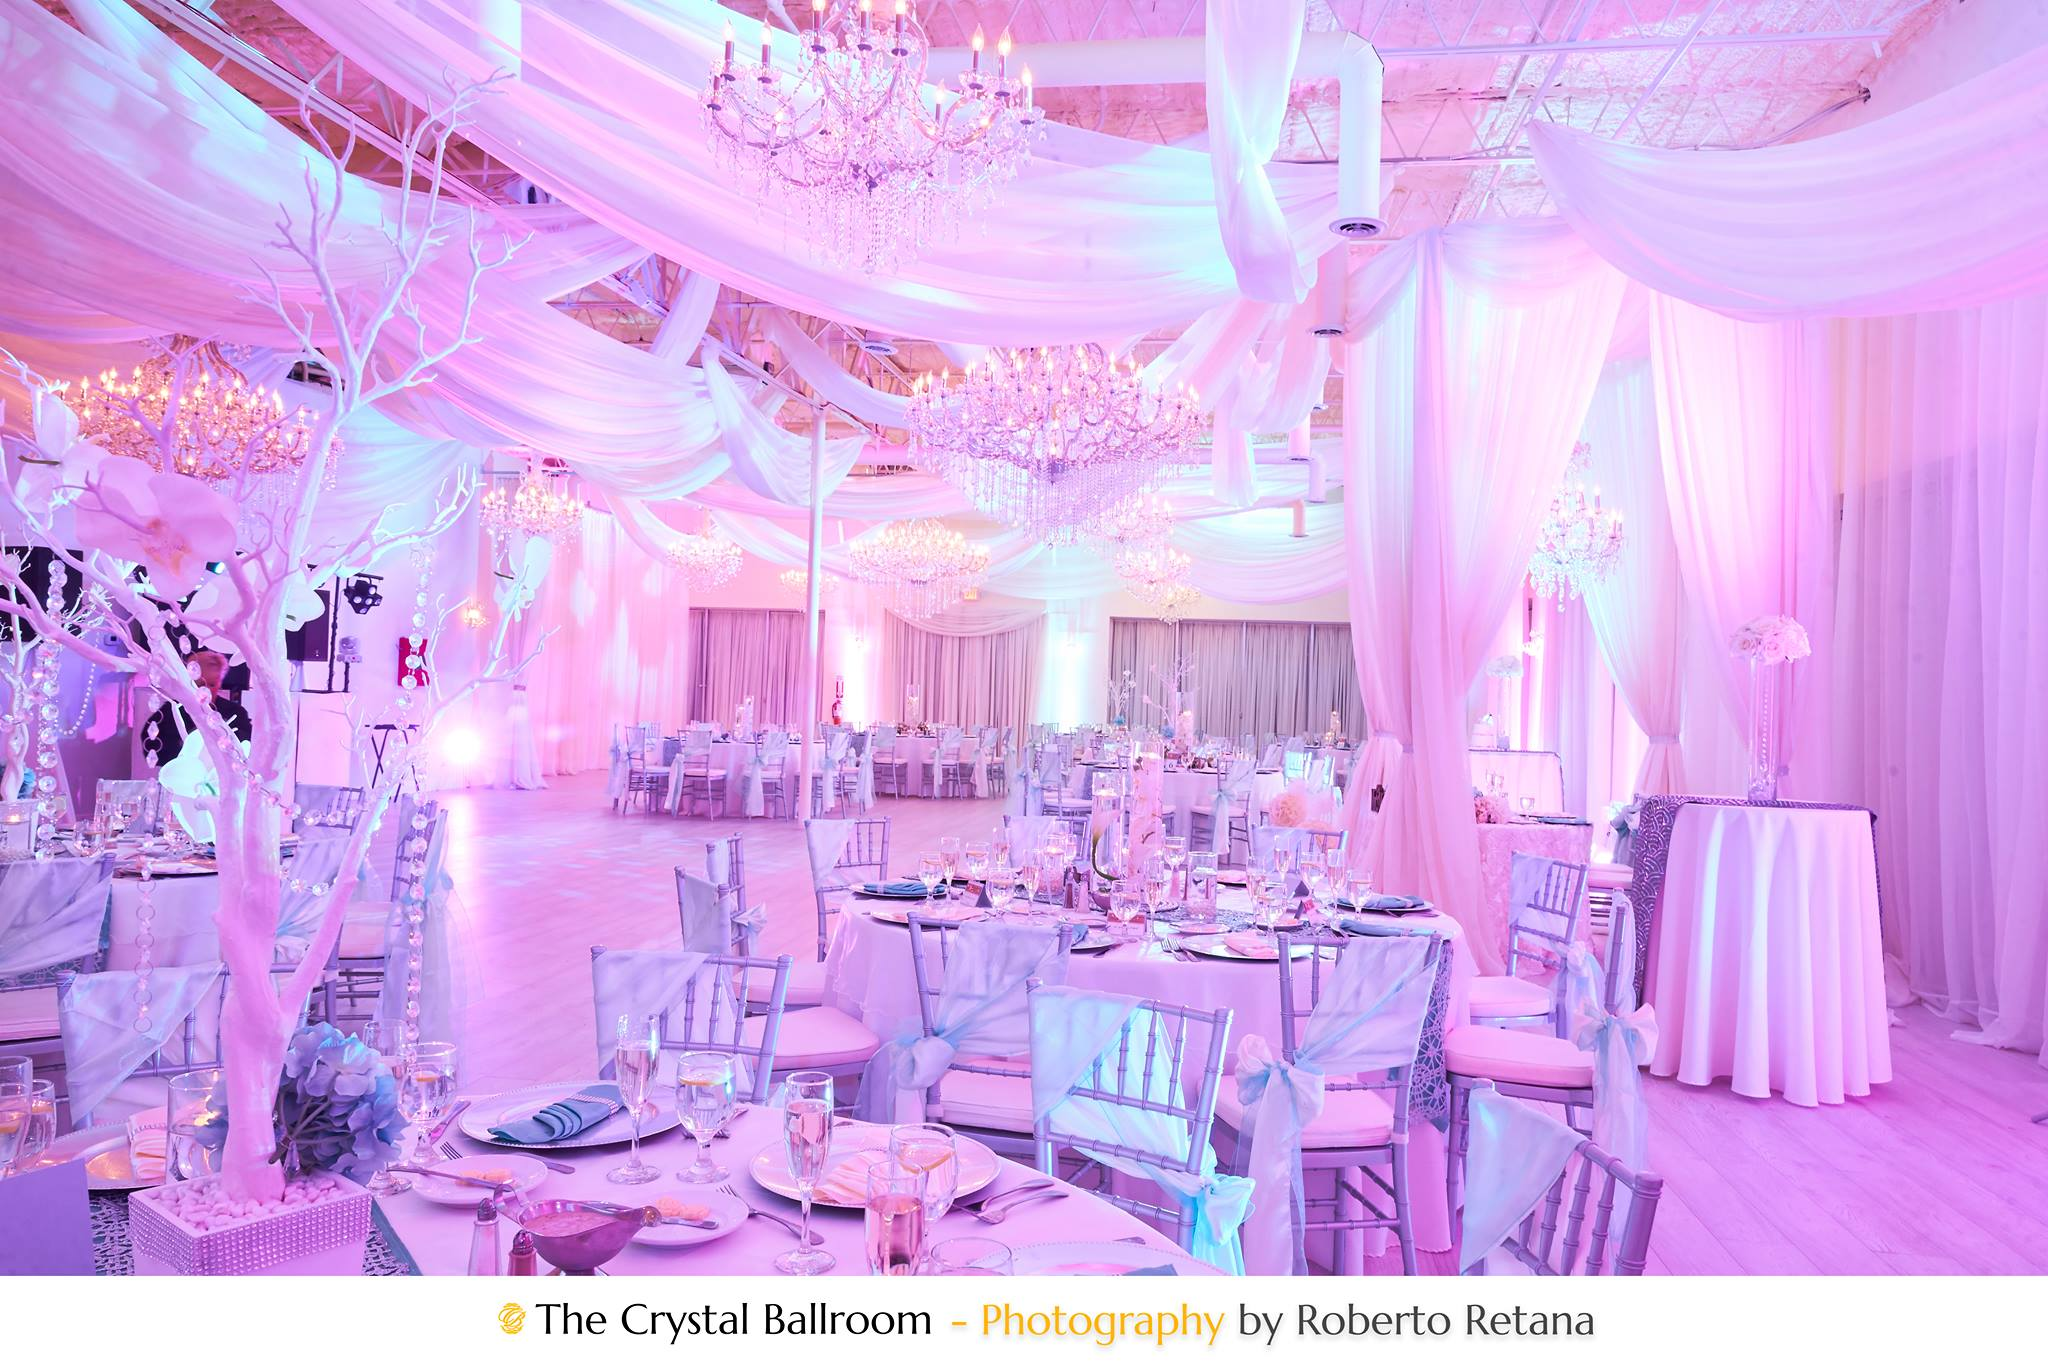 Wedding packages clearwater banquet halls fl event venue 33760 wedding packages clearwater banquet halls fl event venue 33760 the crystal ballroom junglespirit Image collections